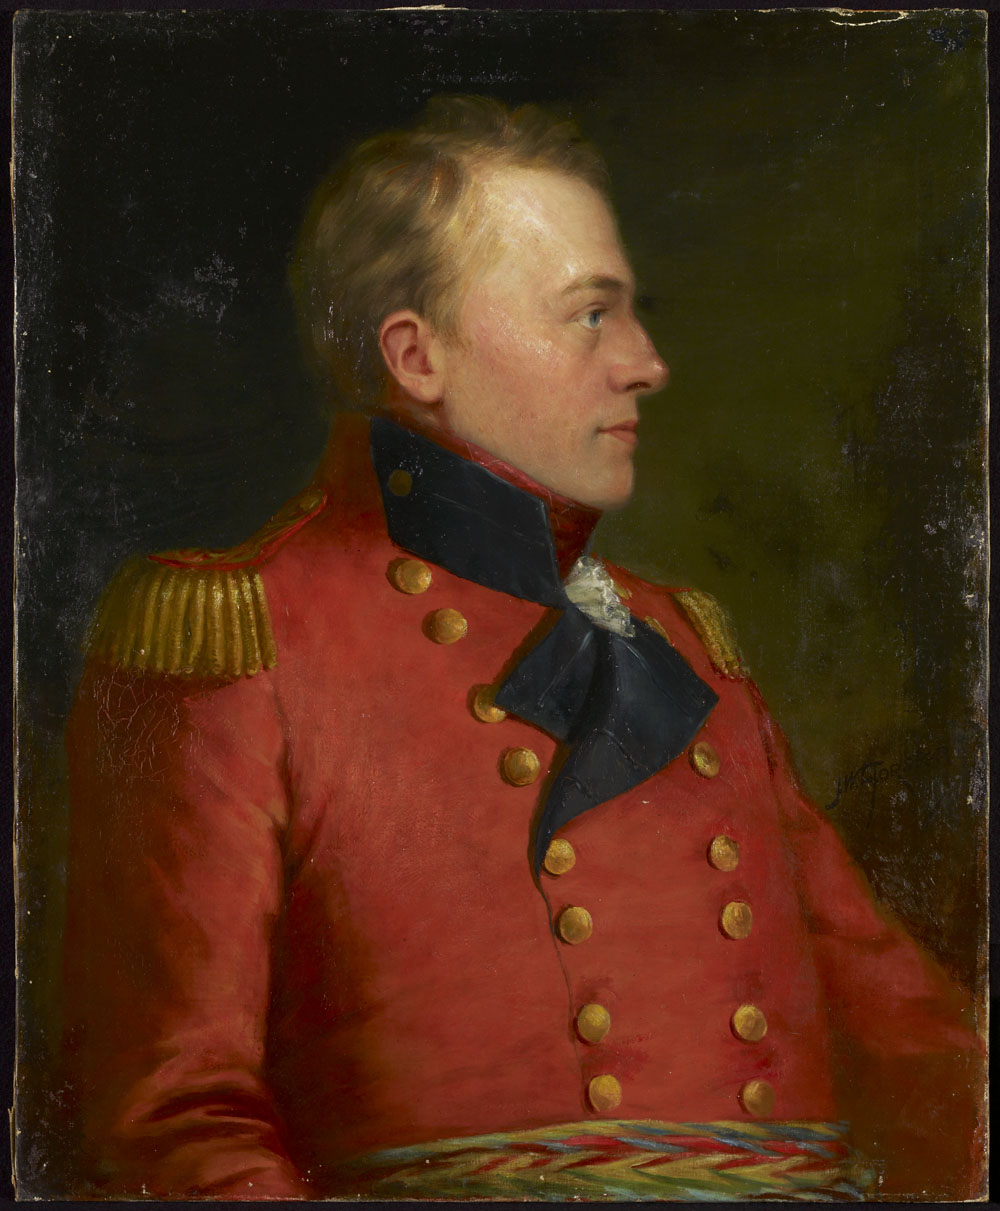 sir isaac brock Sir isaac brock was named in honour of british general sir isaac brock and was established in 1969 the school has an open concept layout comprised of two groupings of 4 classrooms and one grouping of 2 classrooms.